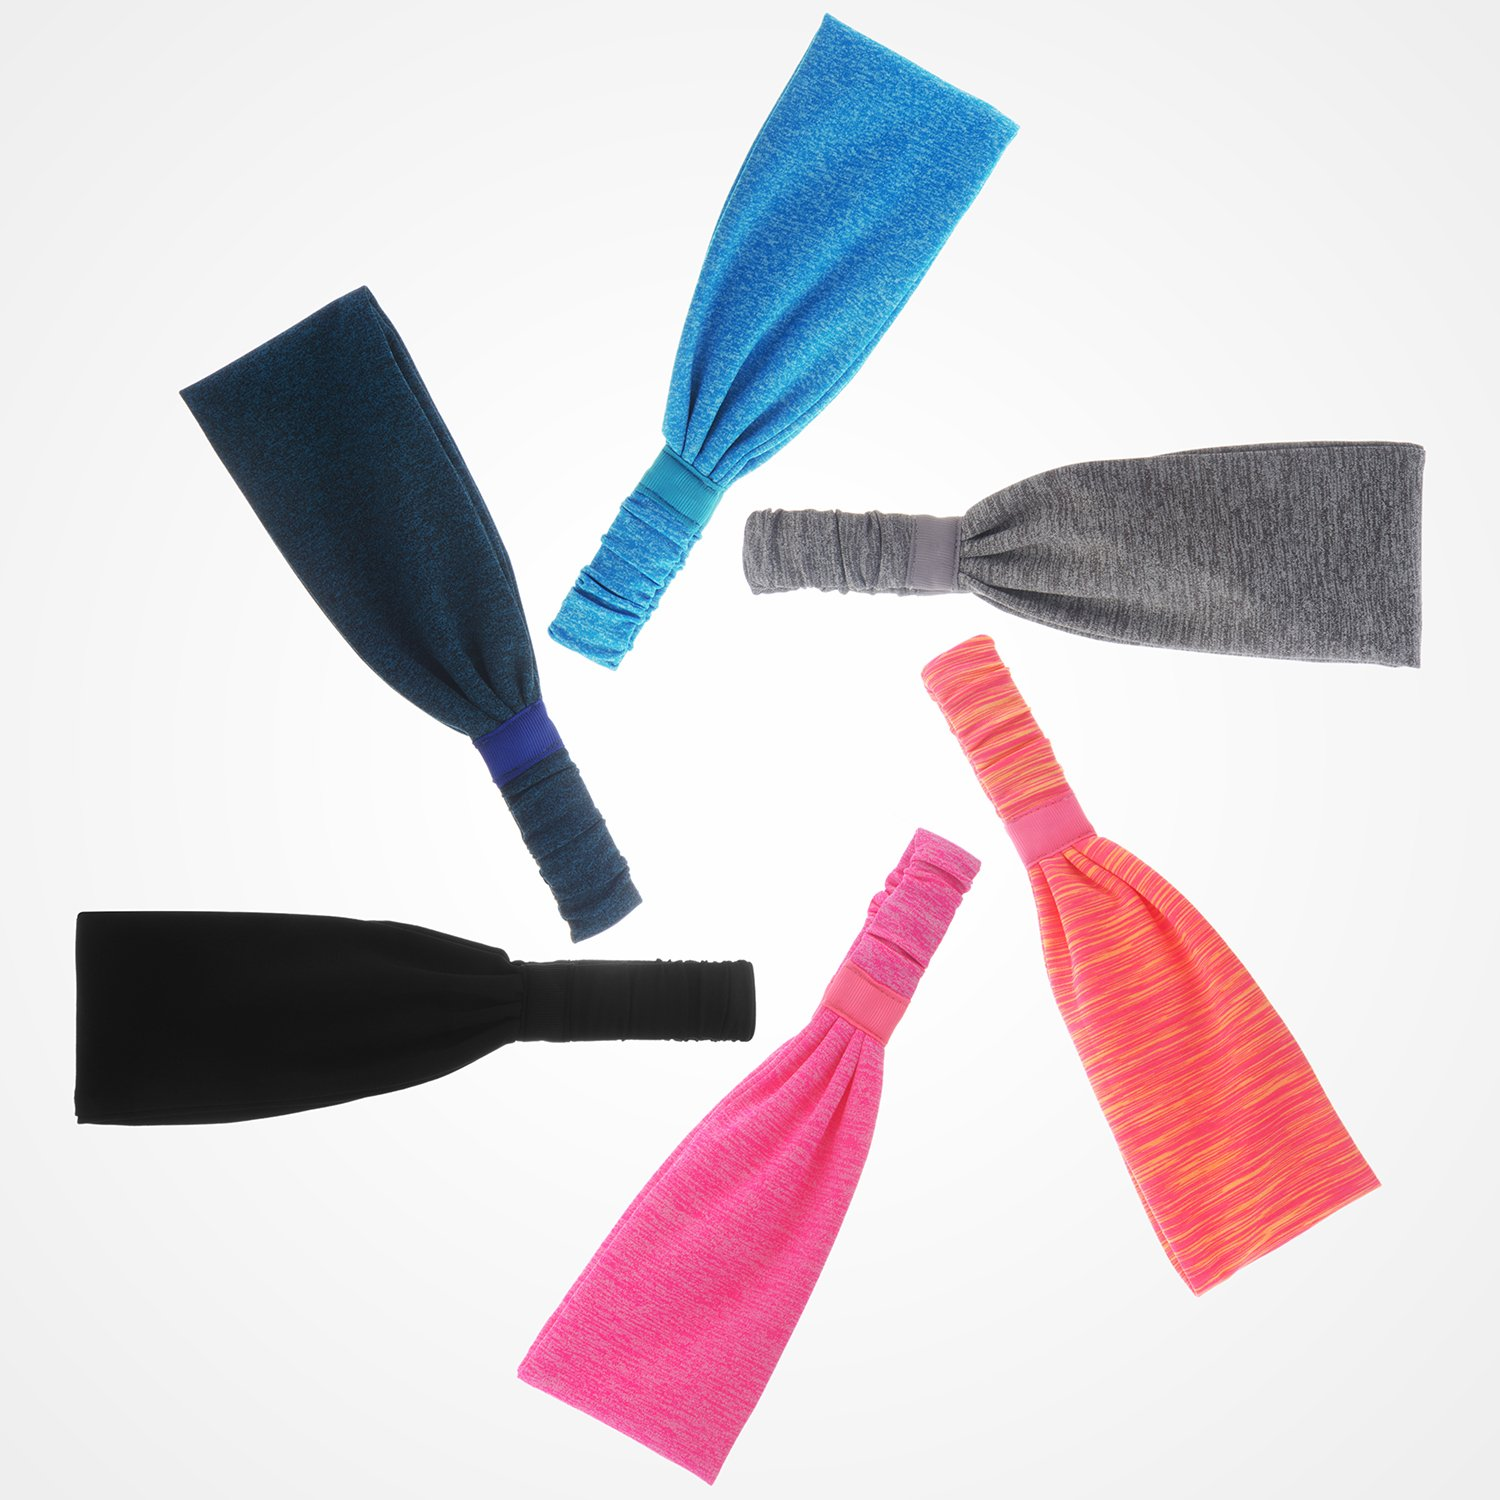 6 Pieces Sport Headband Yoga/Cycling/Running /Fitness ExerciseHairband Elastic Sweatband for Unisex by Leoter (Image #2)